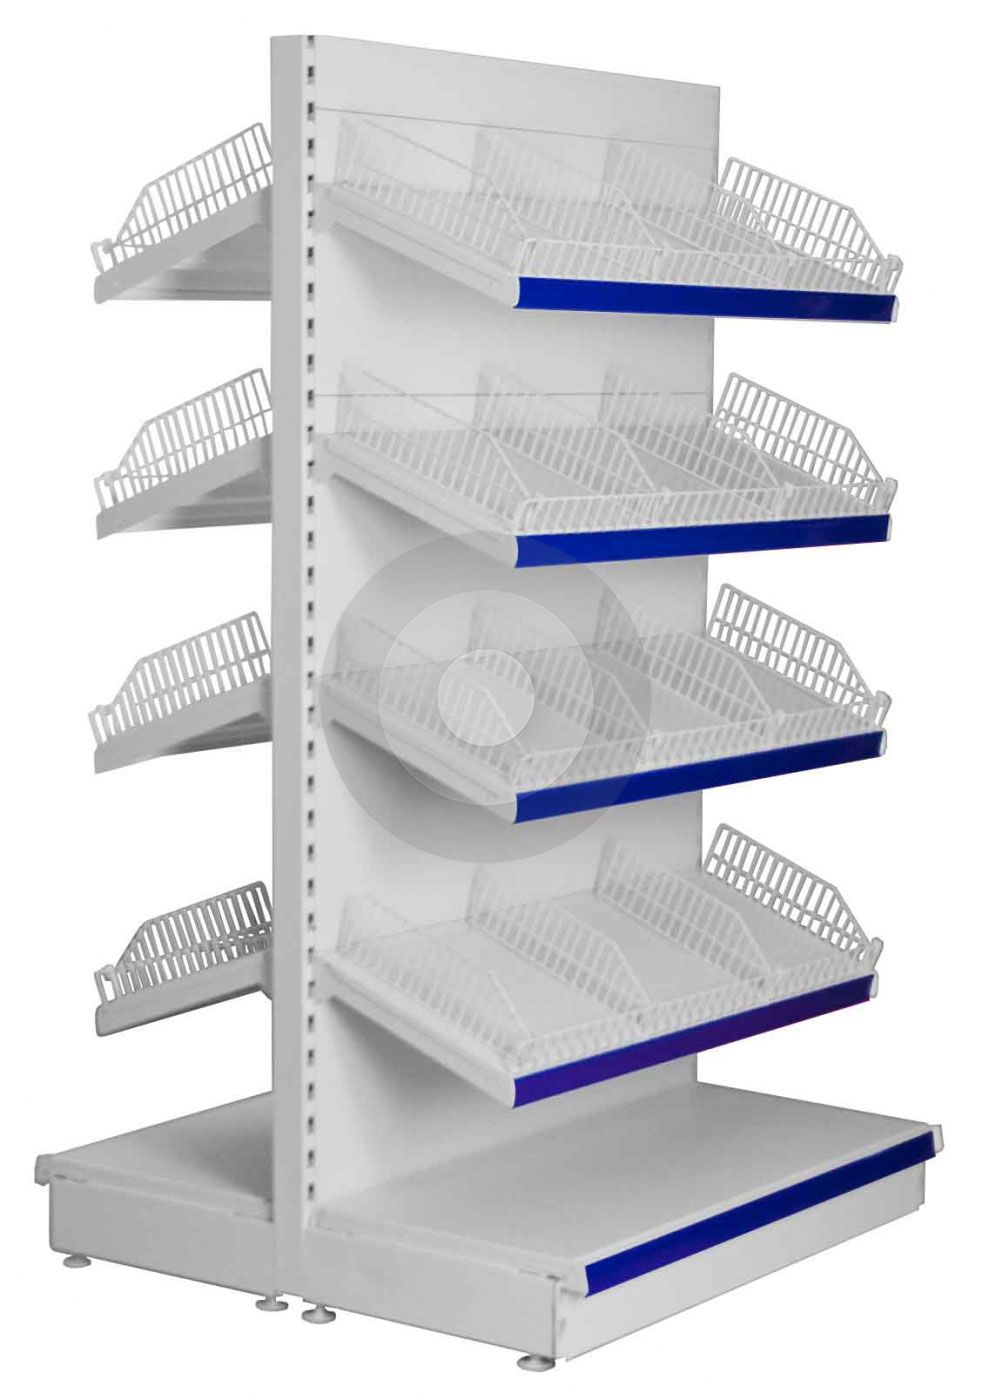 Gondola Shelving With Wire Risers And Dividers Shelving